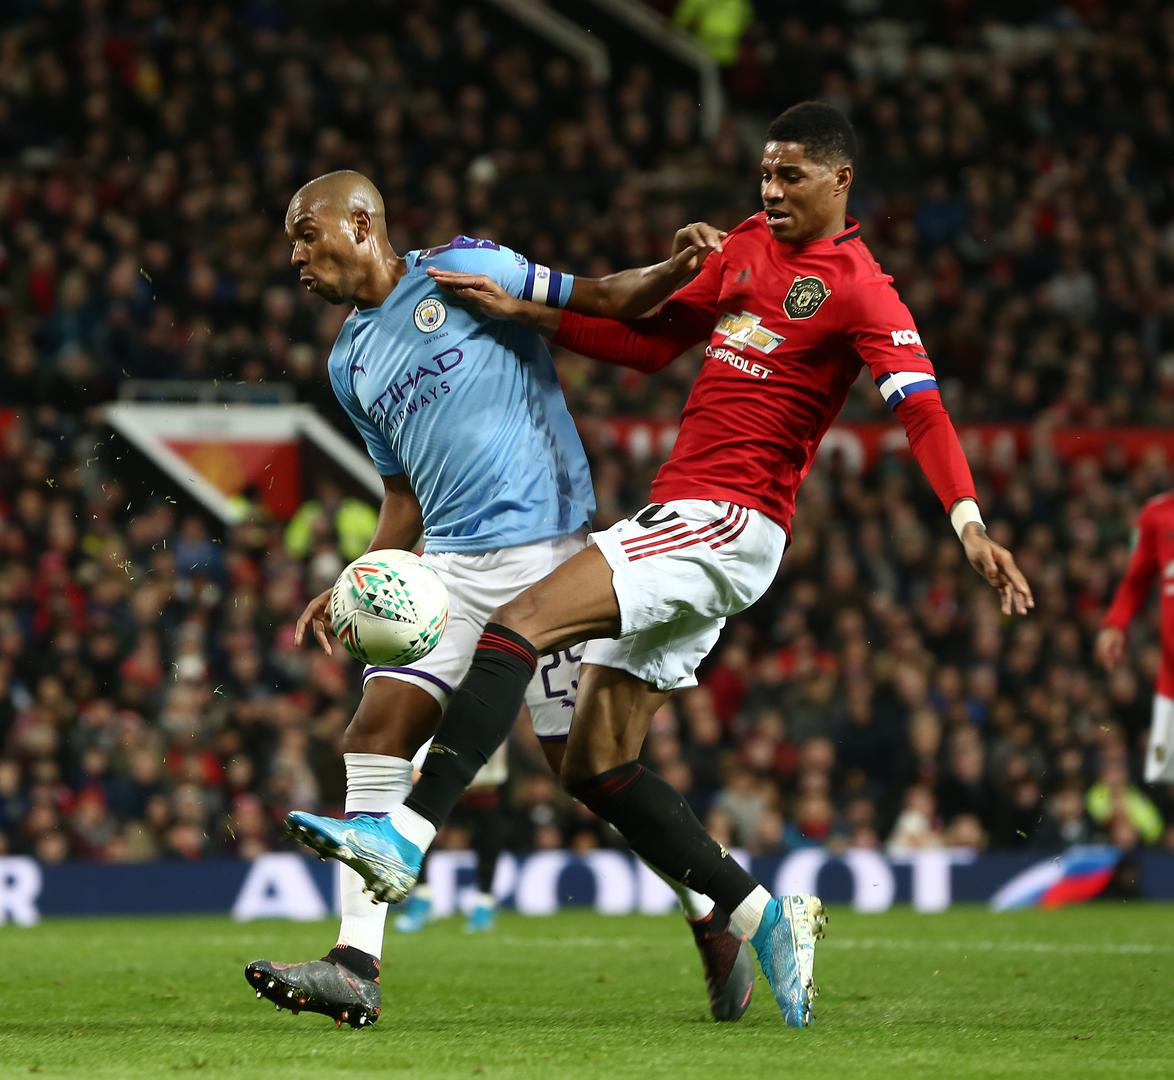 Marcus Rashford tries to shoot under pressure from Fernandinho